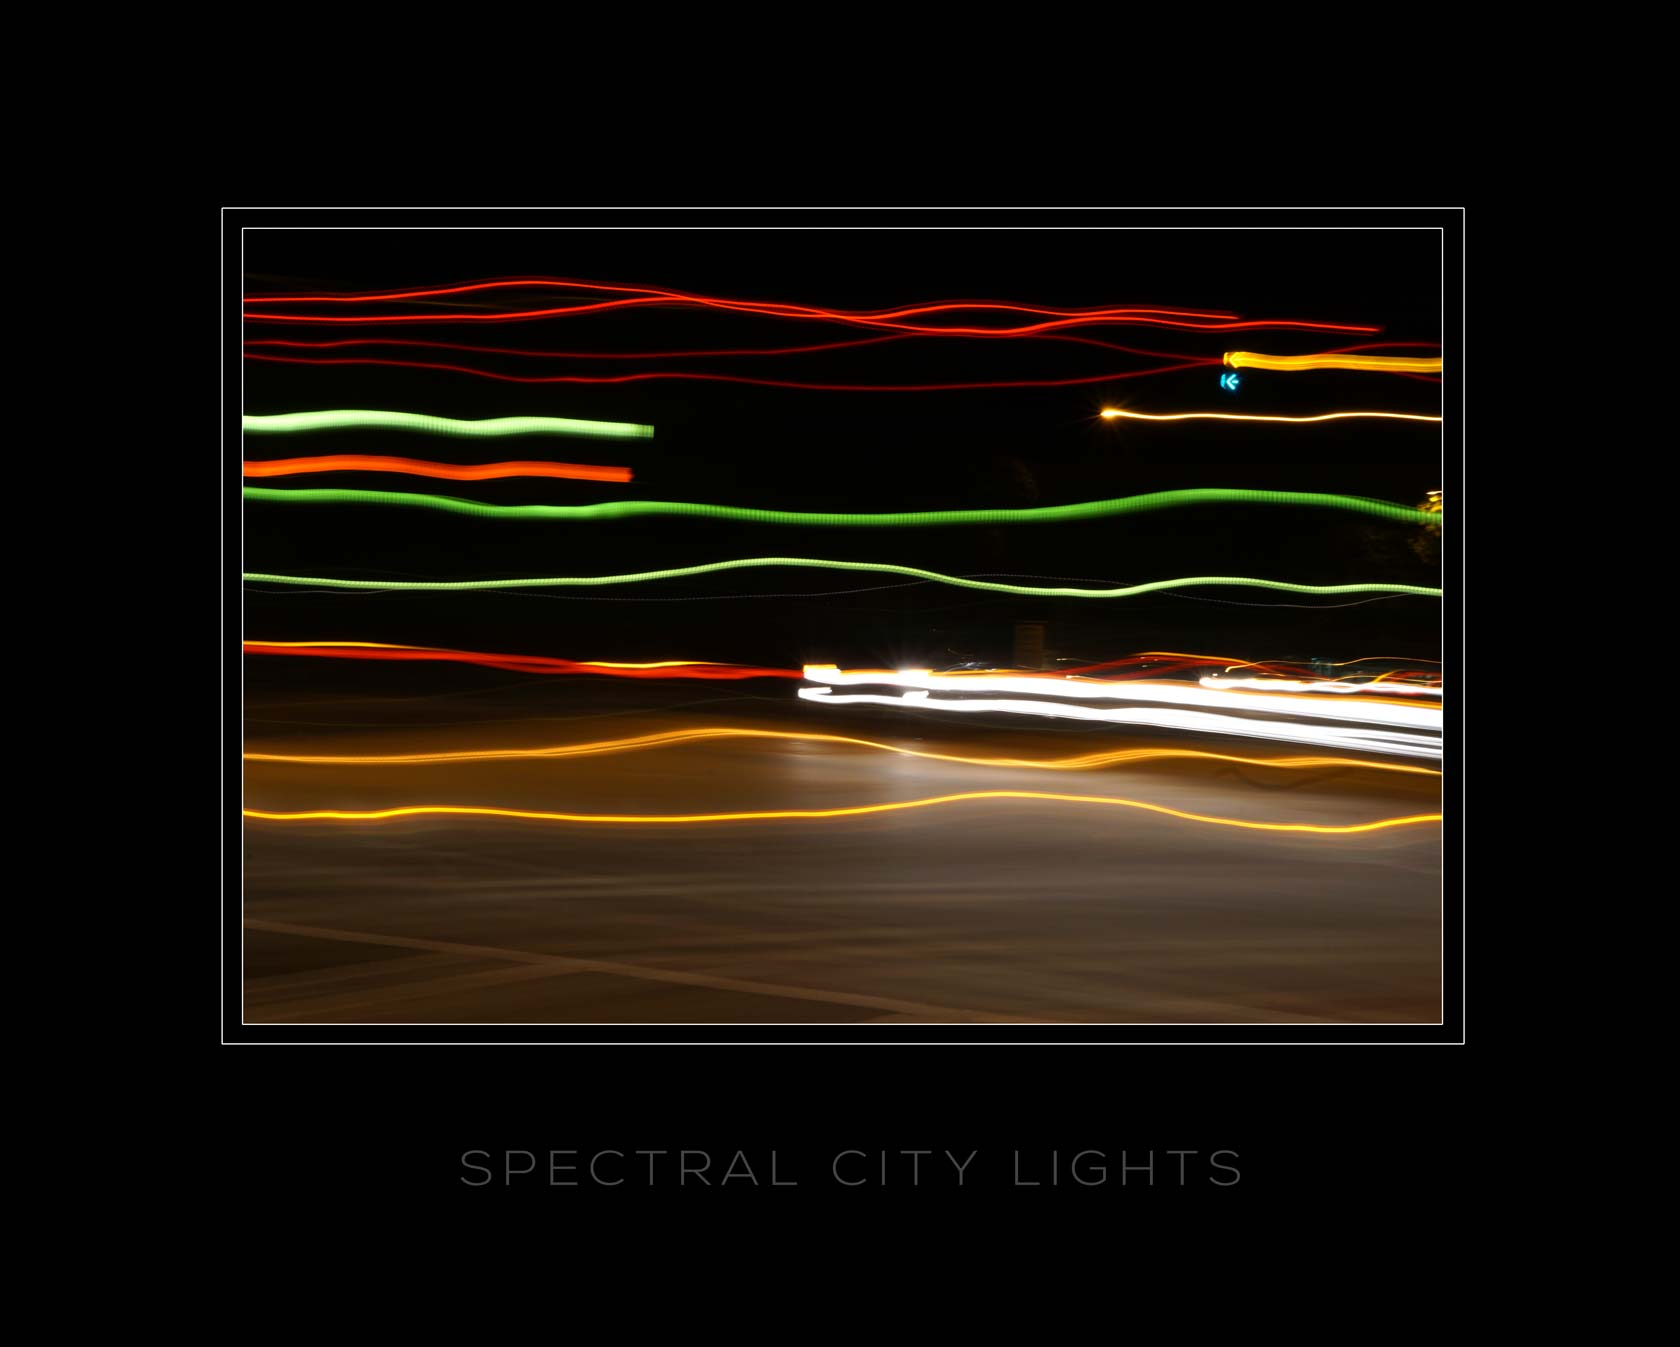 Spectral_City_Lights_1